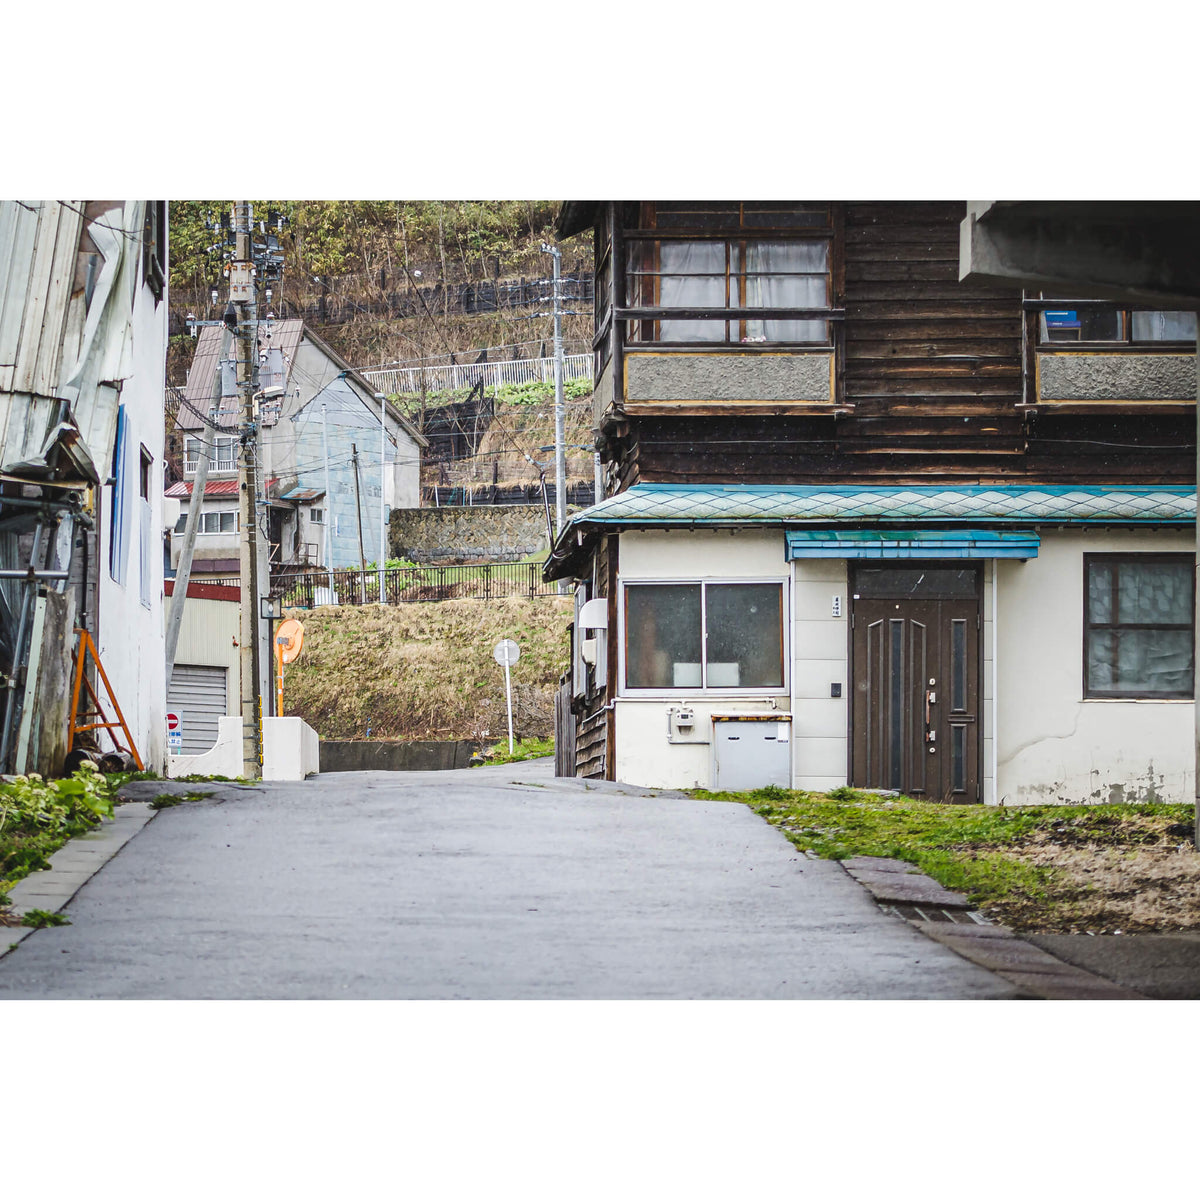 Yubari Backstreet | Streetscapes of Yubari